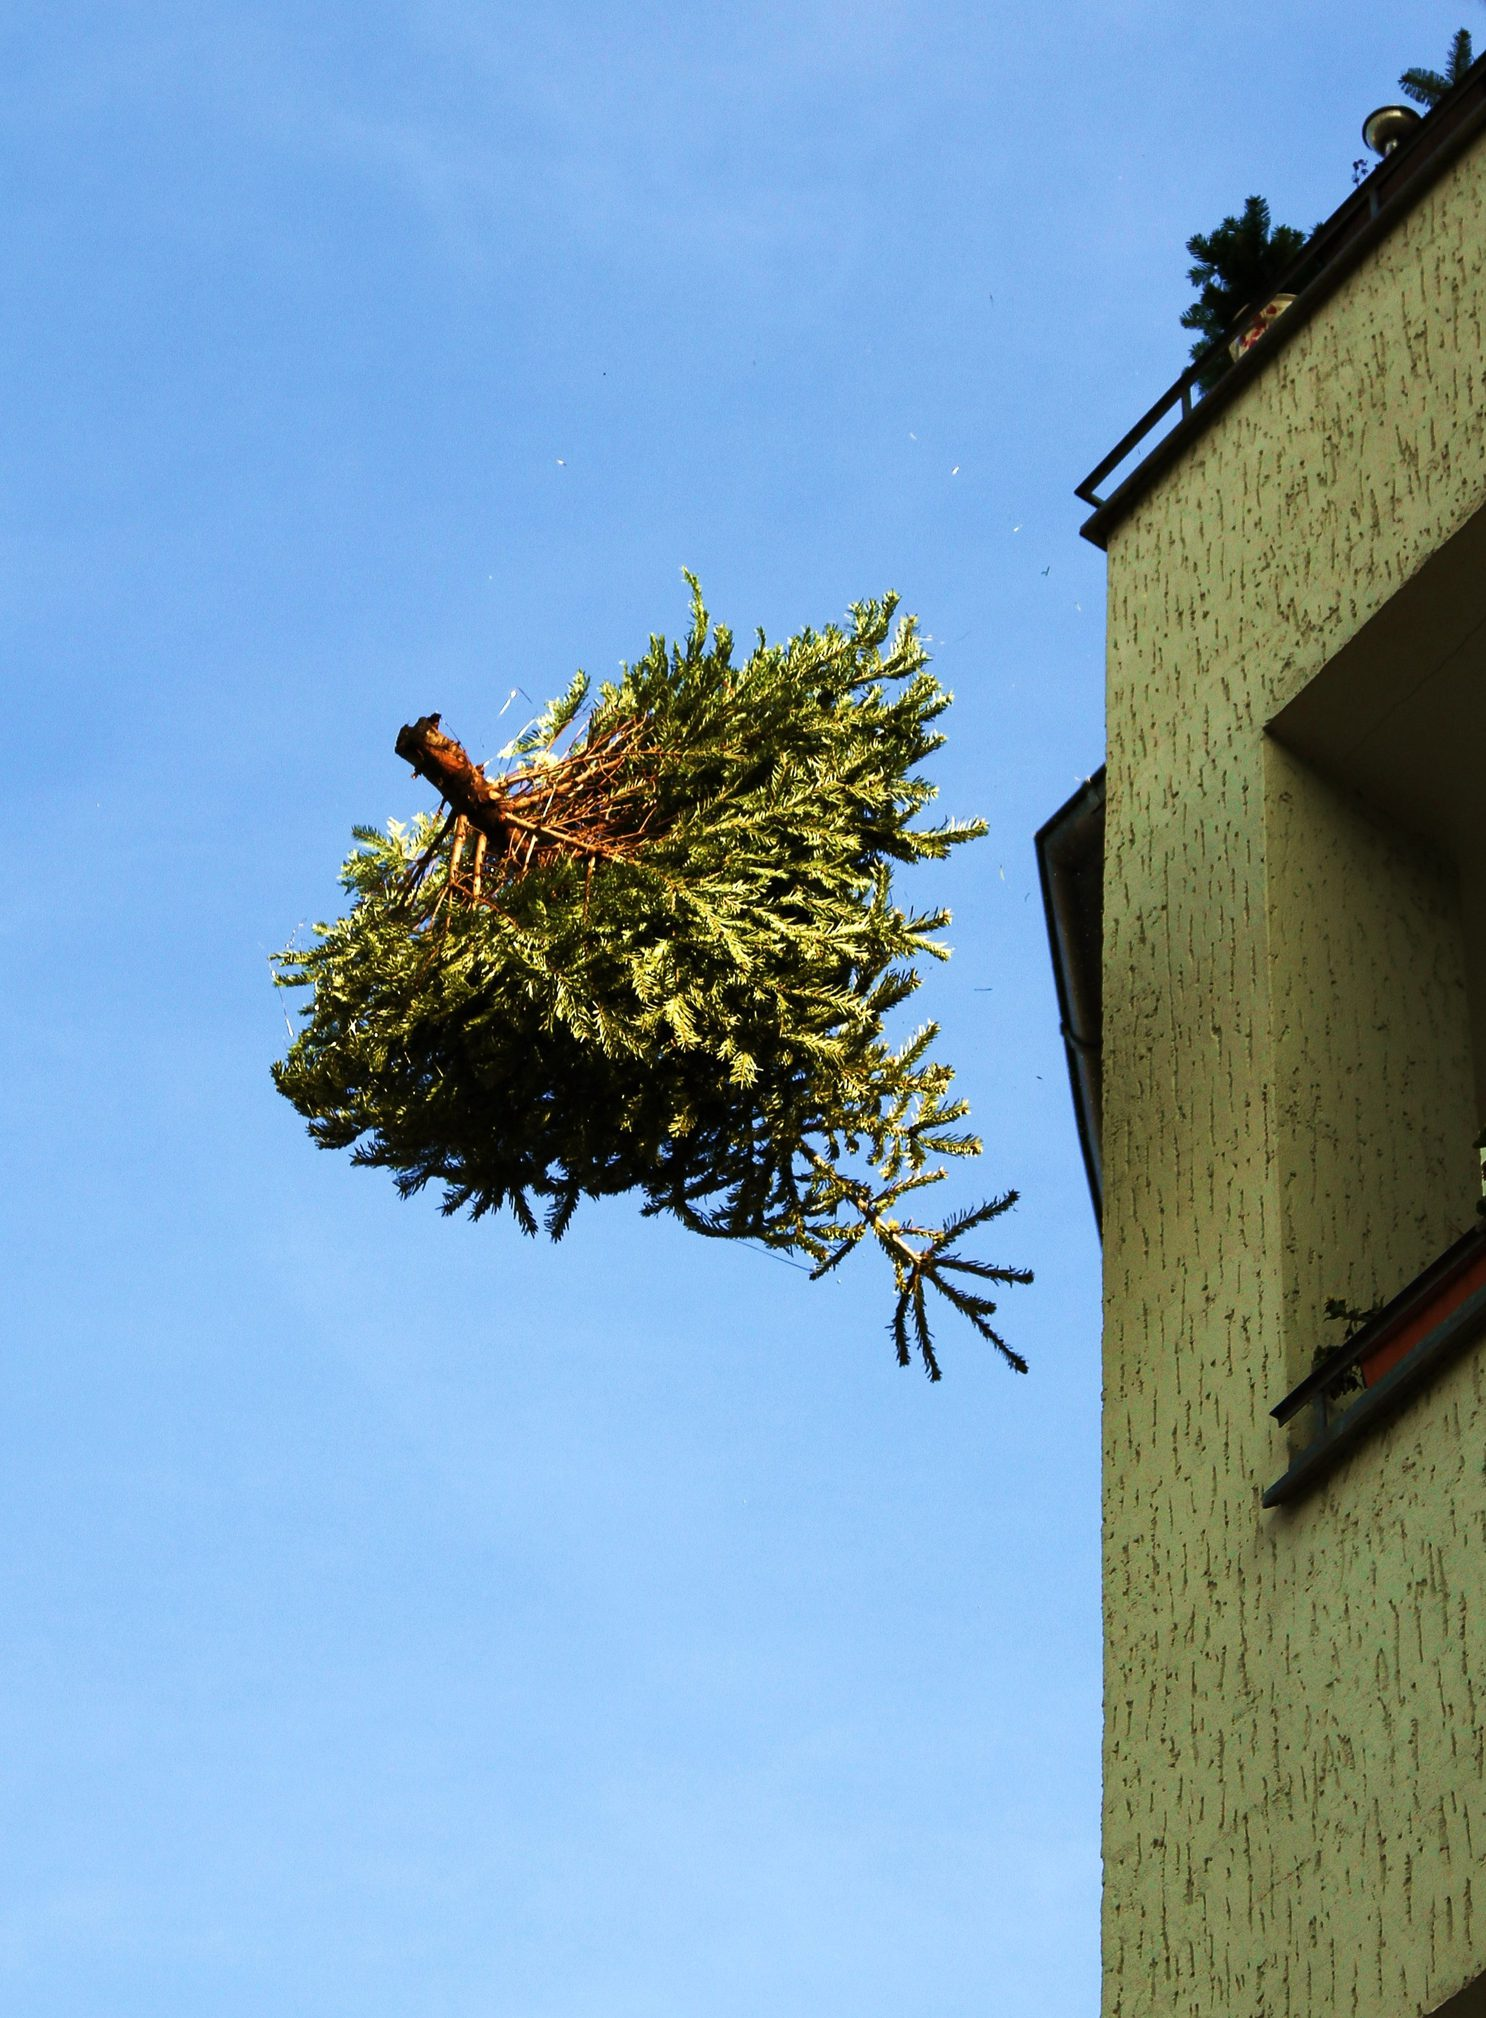 Tree being thrown from roof